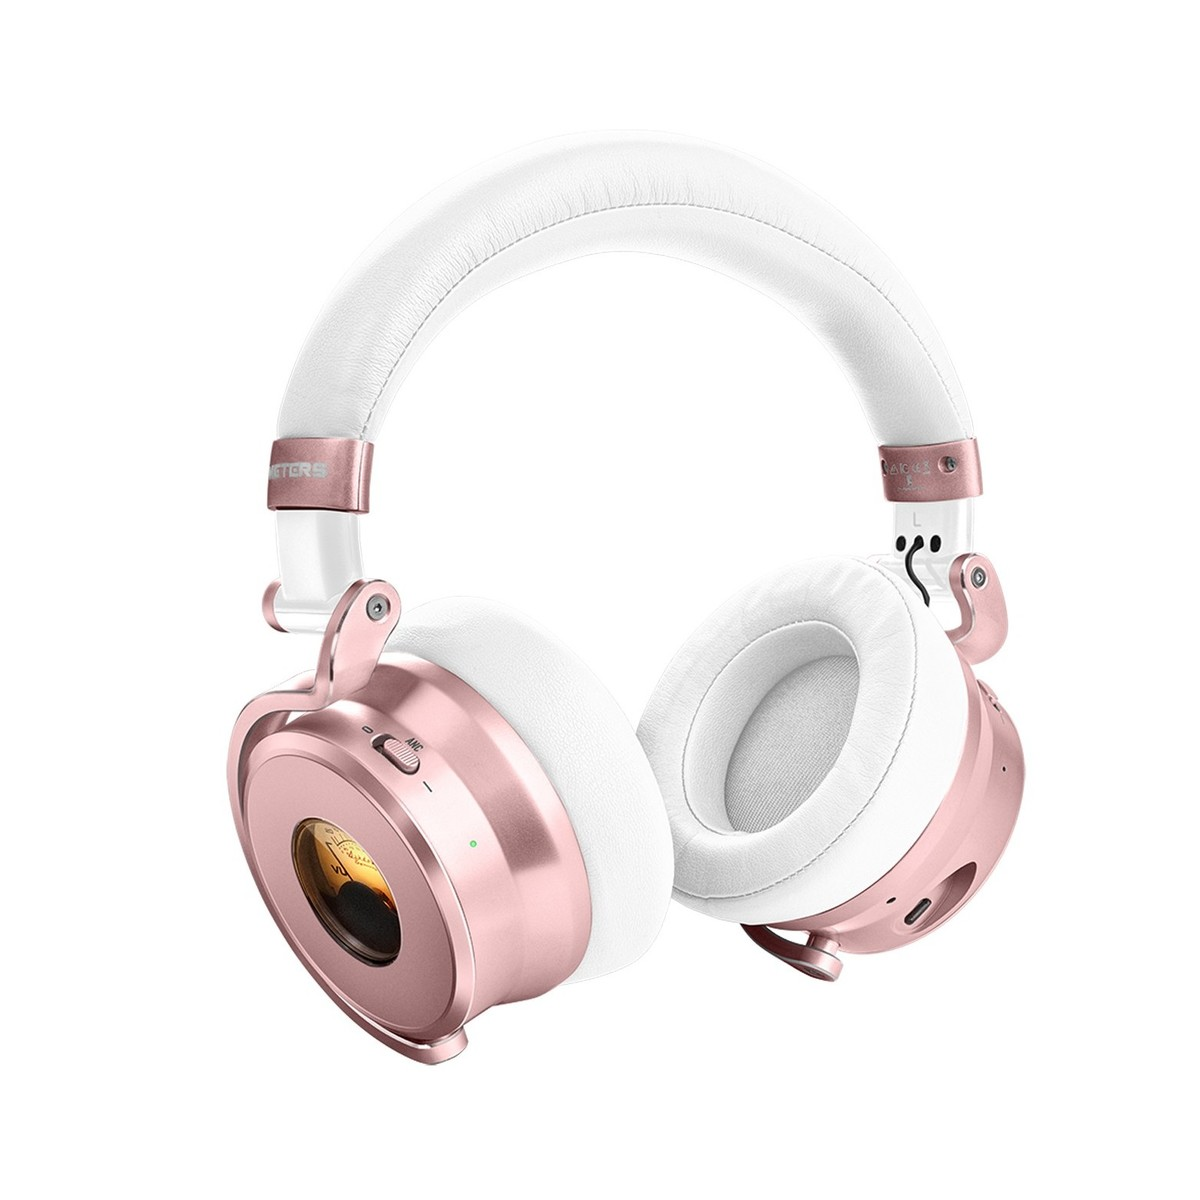 meter ov 1 b bluetooth over ear headphones rose gold. Black Bedroom Furniture Sets. Home Design Ideas